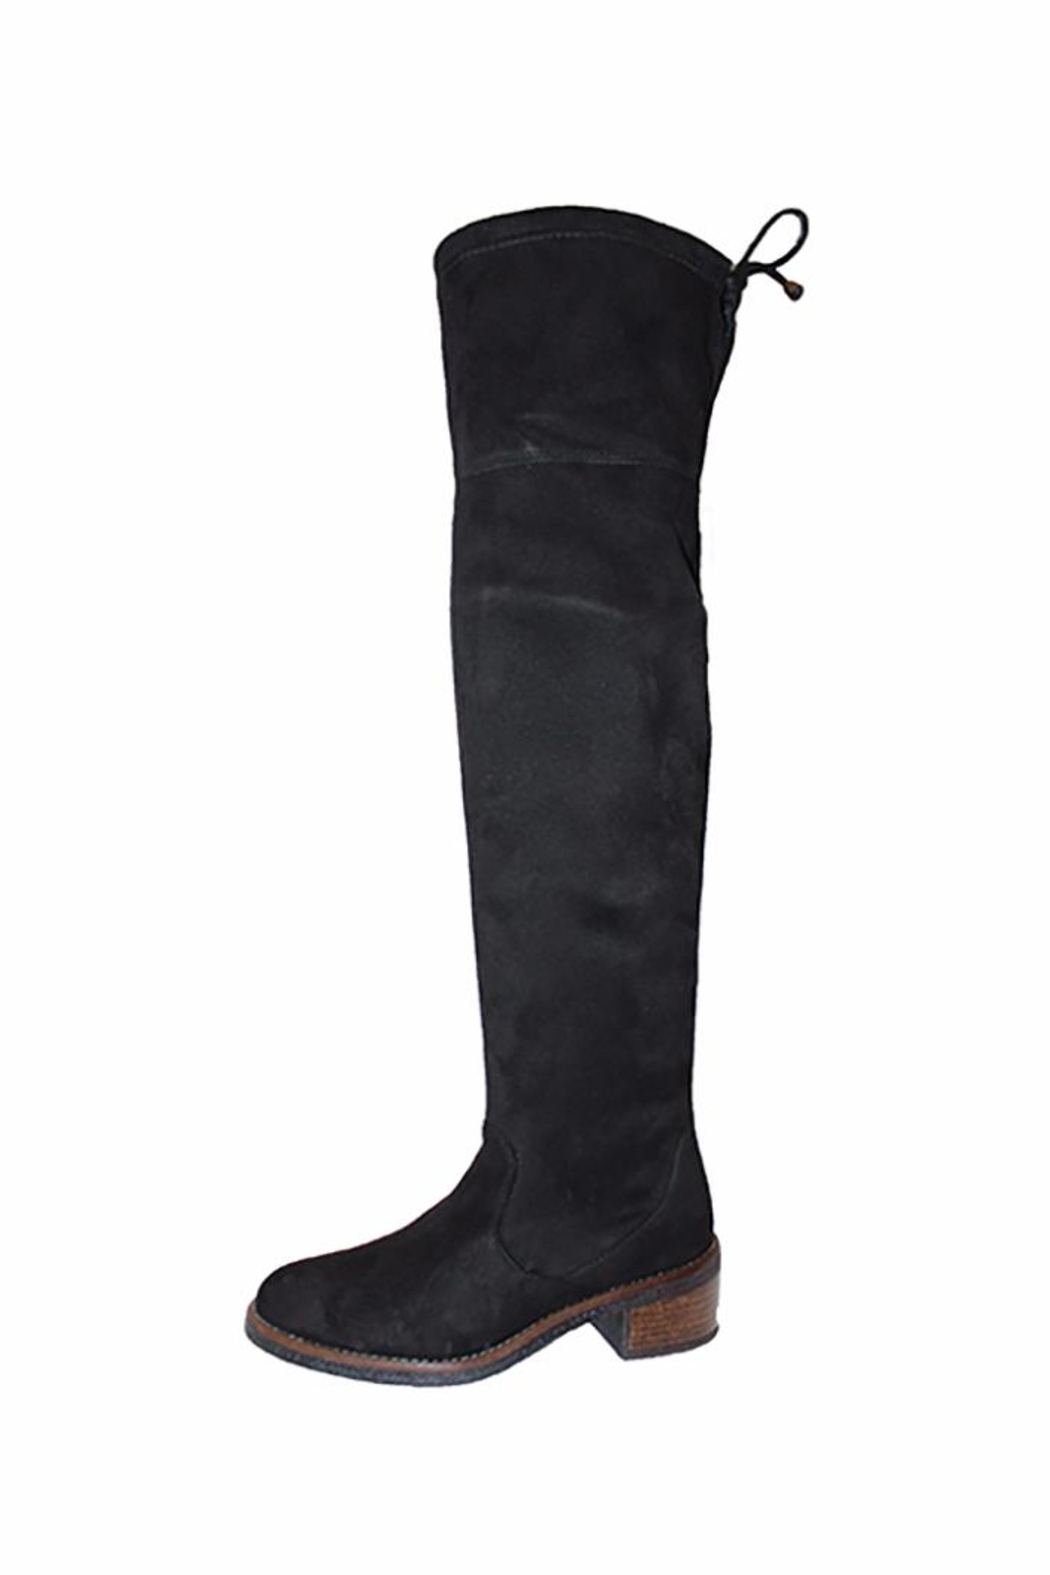 Eric Michael Alessandra Kneehigh Boot - Front Cropped Image